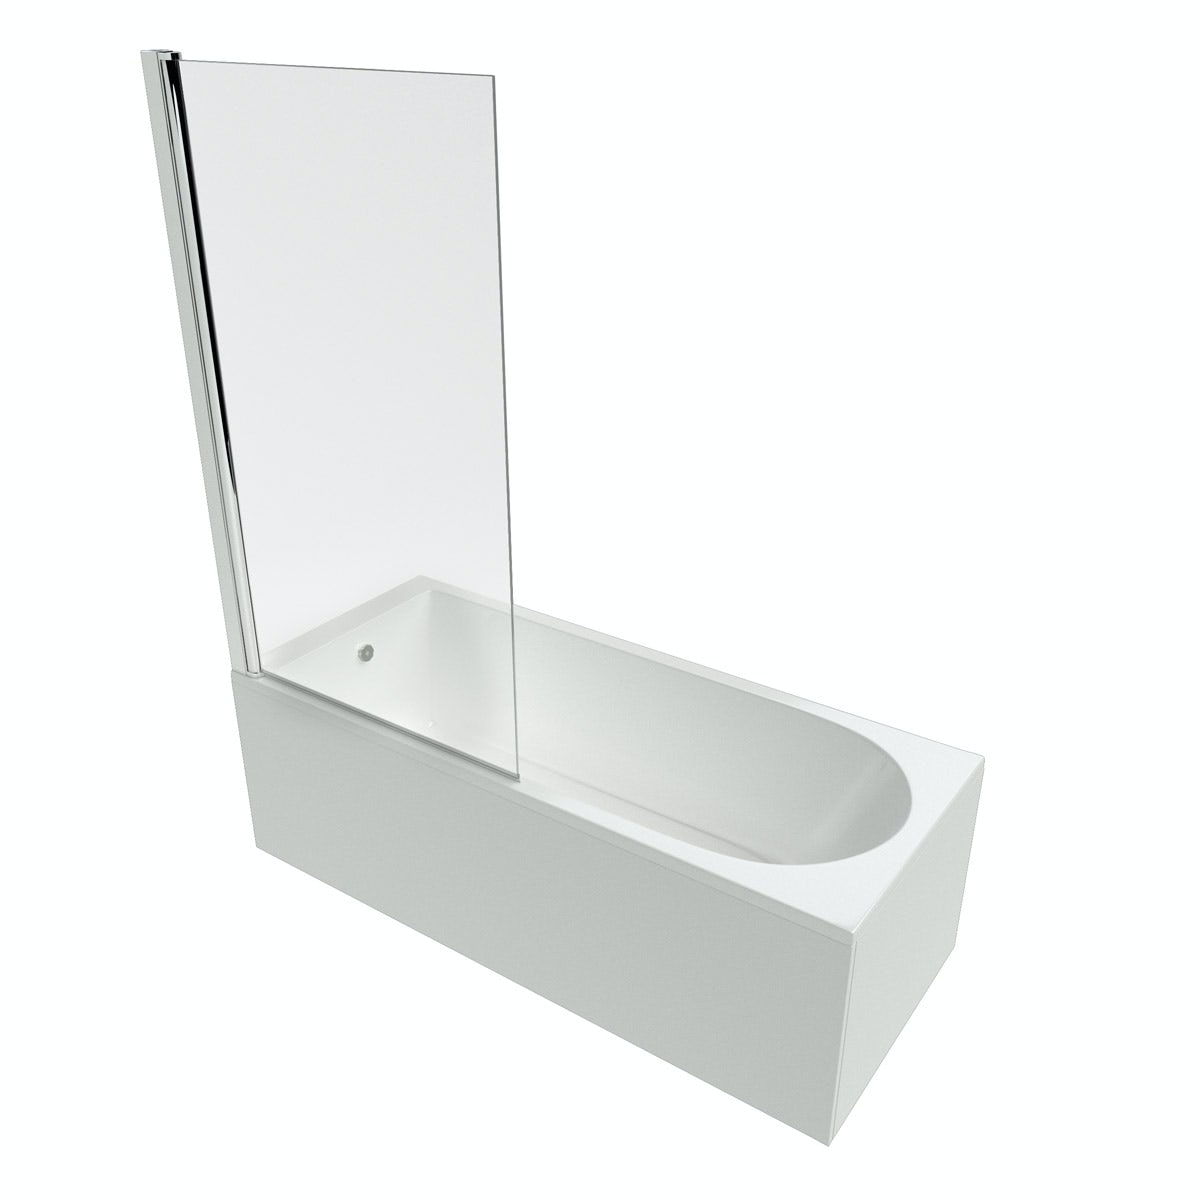 Ideal Standard Tesi straight bath and radius screen 1700 x 700